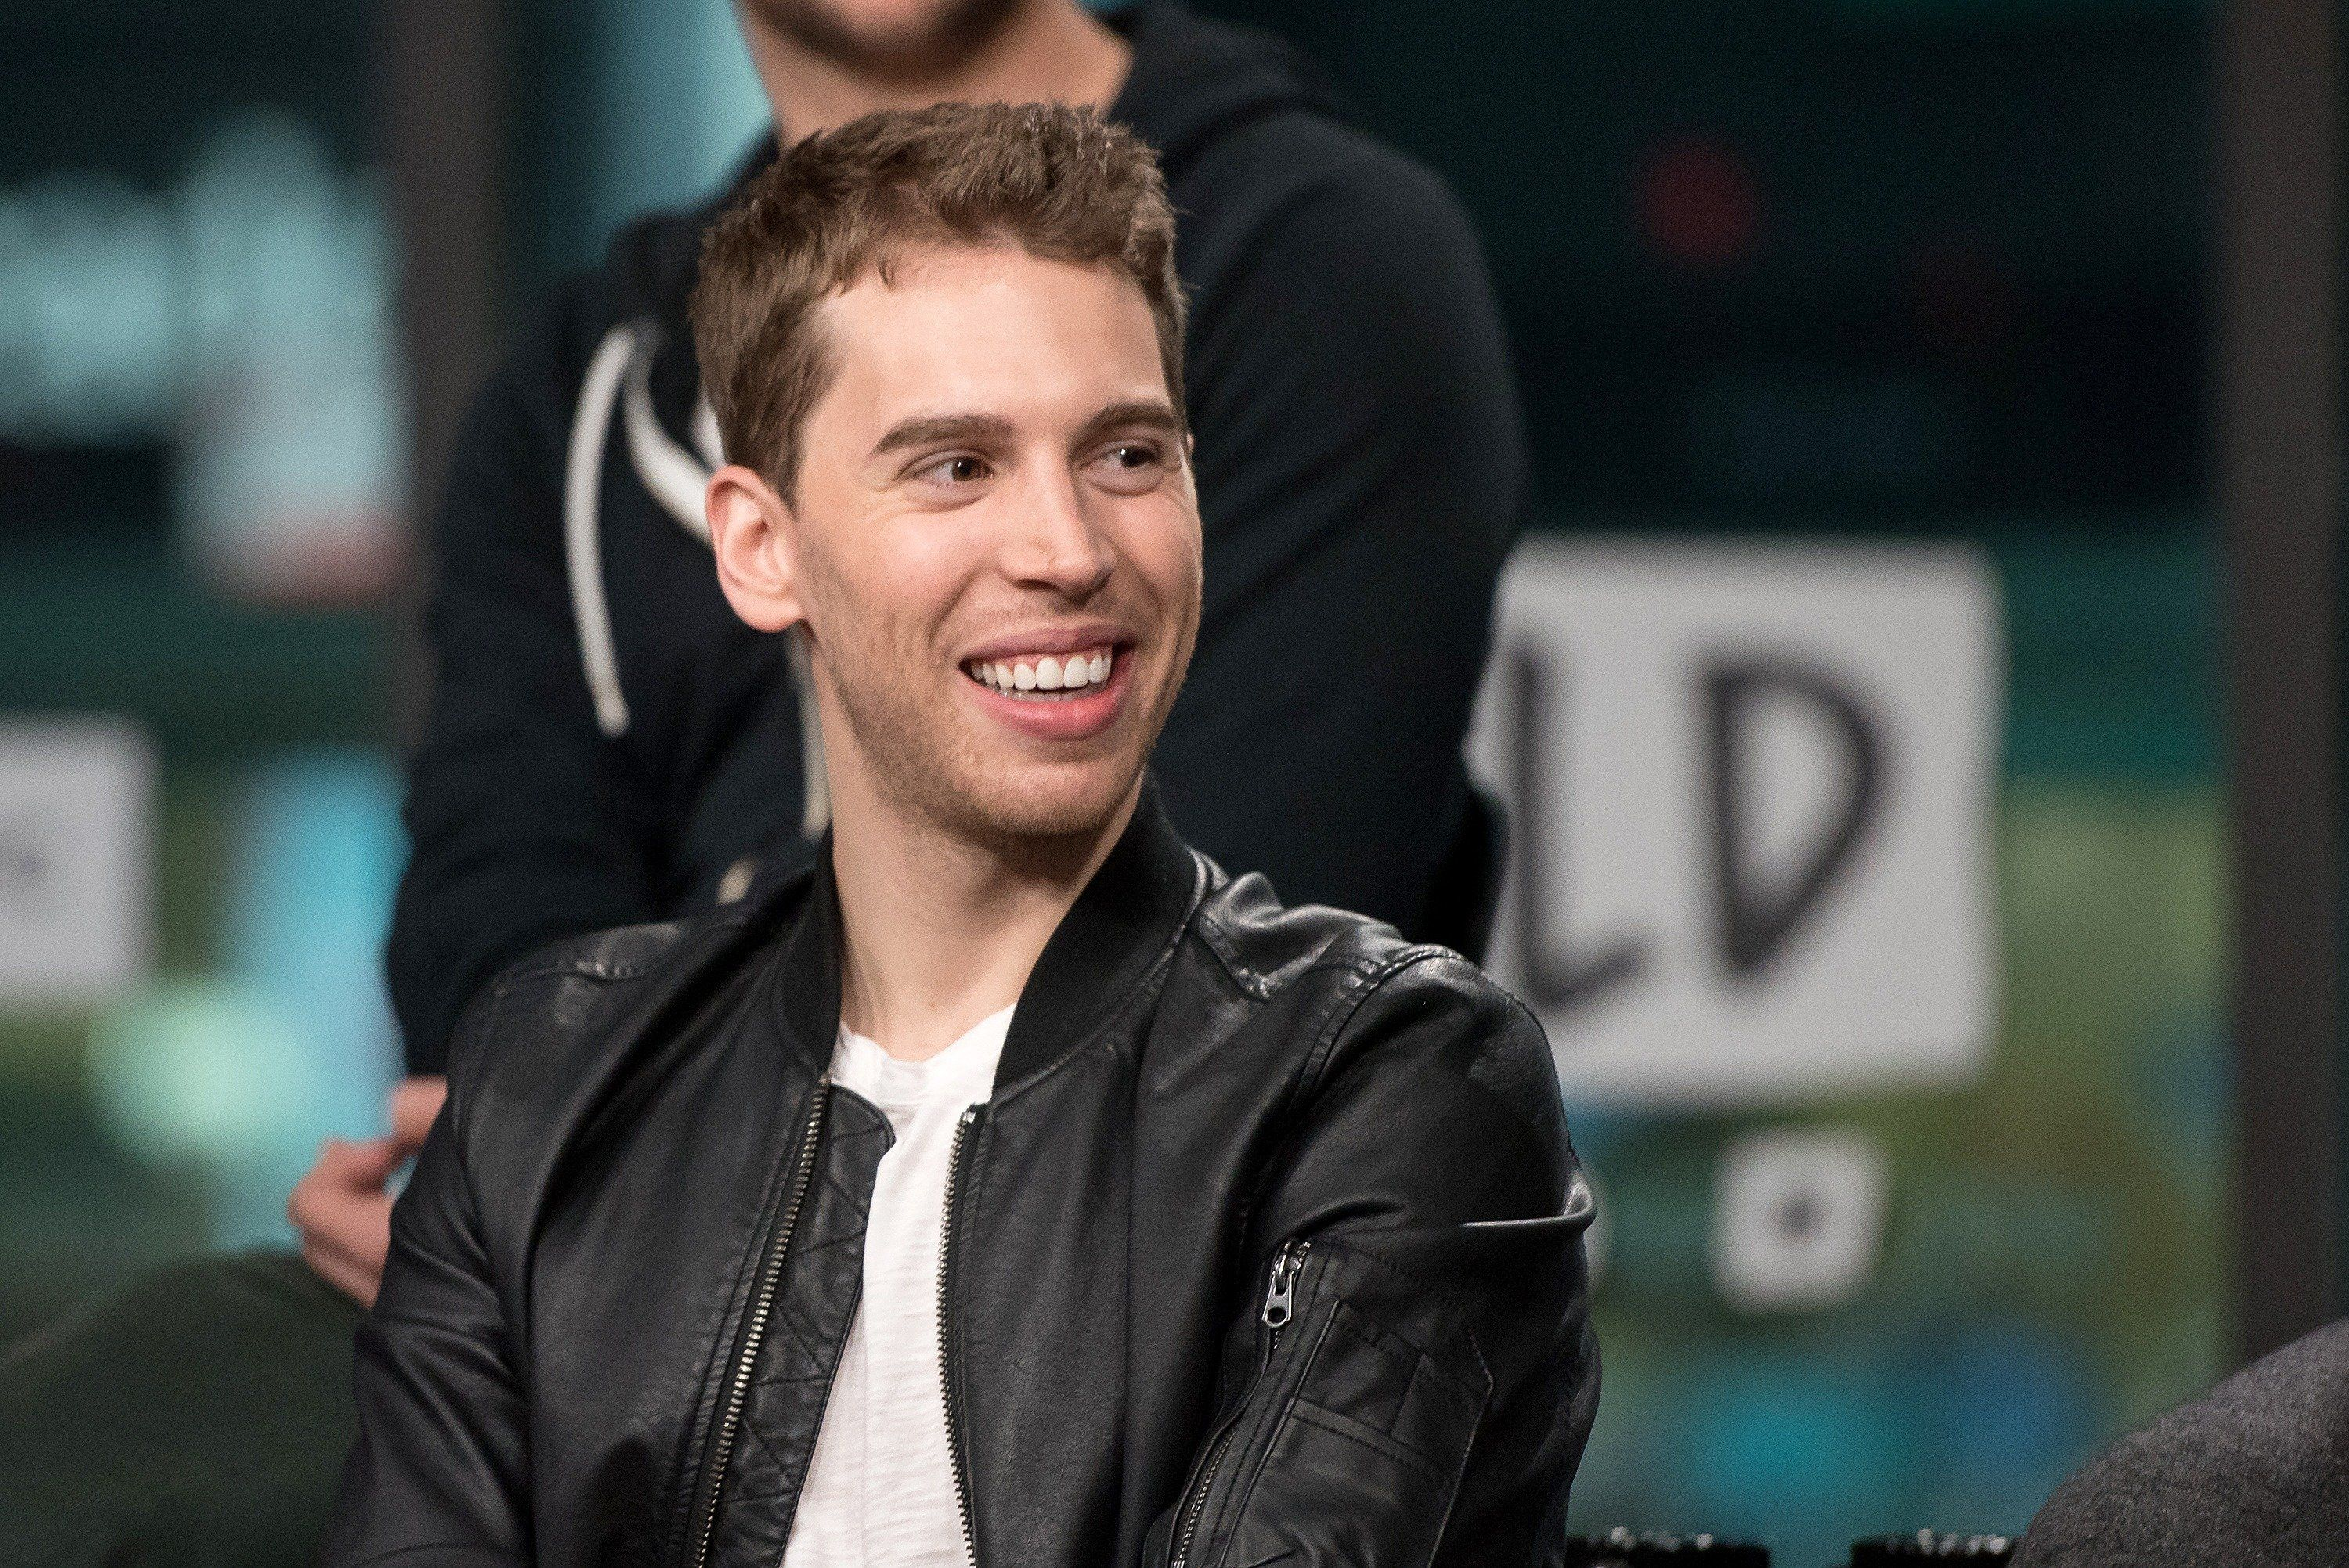 NEW YORK, NY - JUNE 06:  Jordan Gavaris visits Build Studios to discuss 'Orphan Black' at Build Studio on June 6, 2017 in New York City.  (Photo by Mike Pont/WireImage)